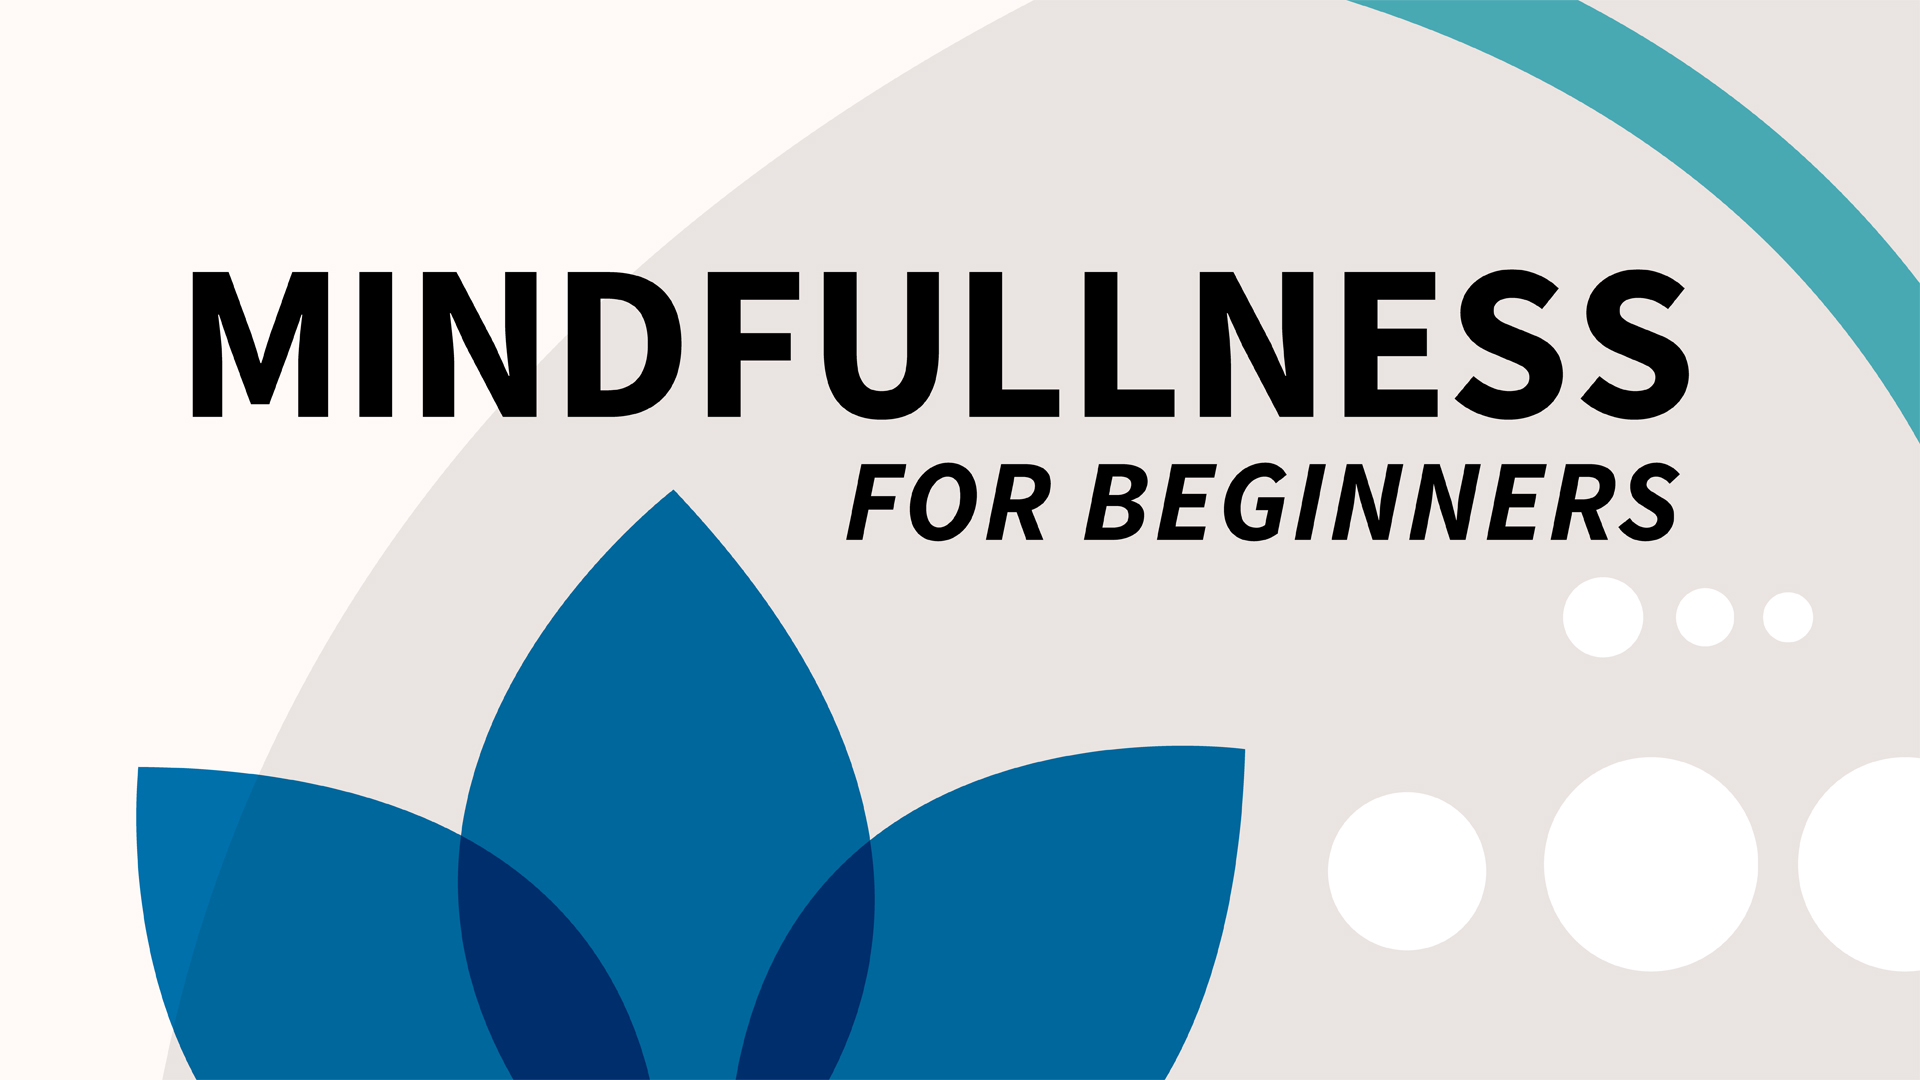 Introduction to session one of mindfulness: Mindfulness for Beginners